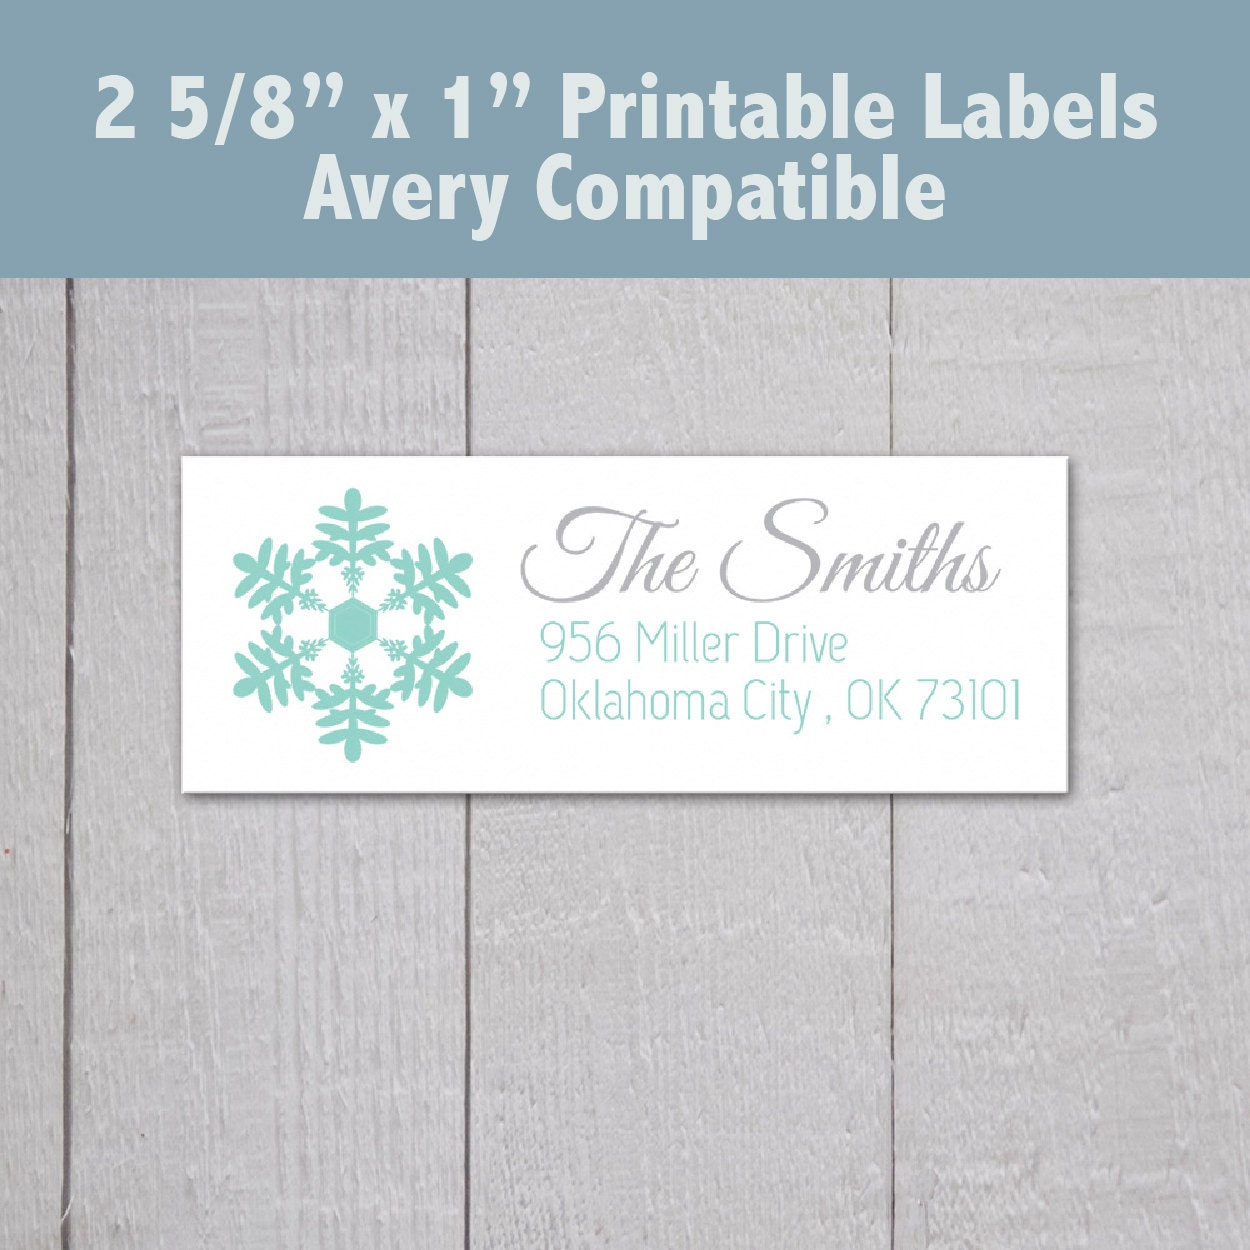 It's just a picture of Current Address Labels Printable